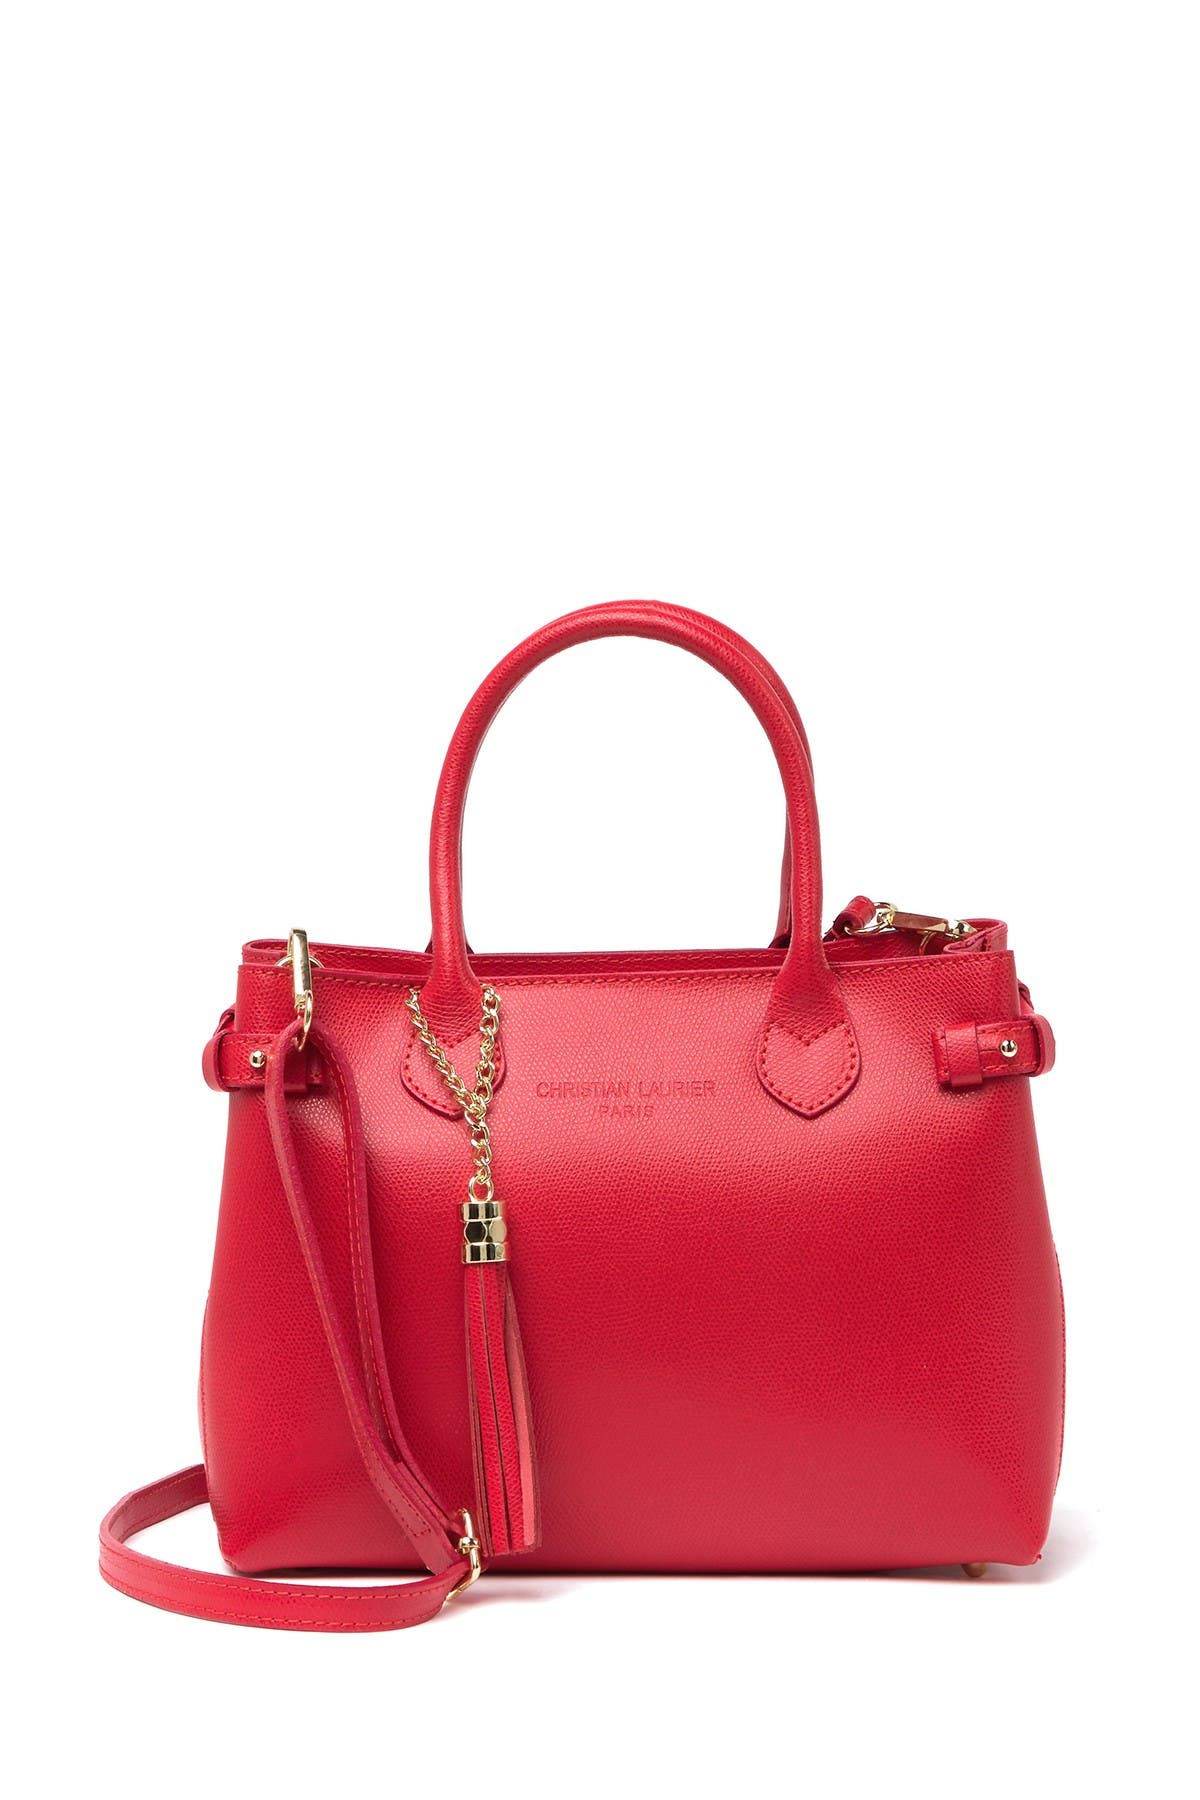 Image of CHRISTIAN LAURIER Jana Leather Satchel